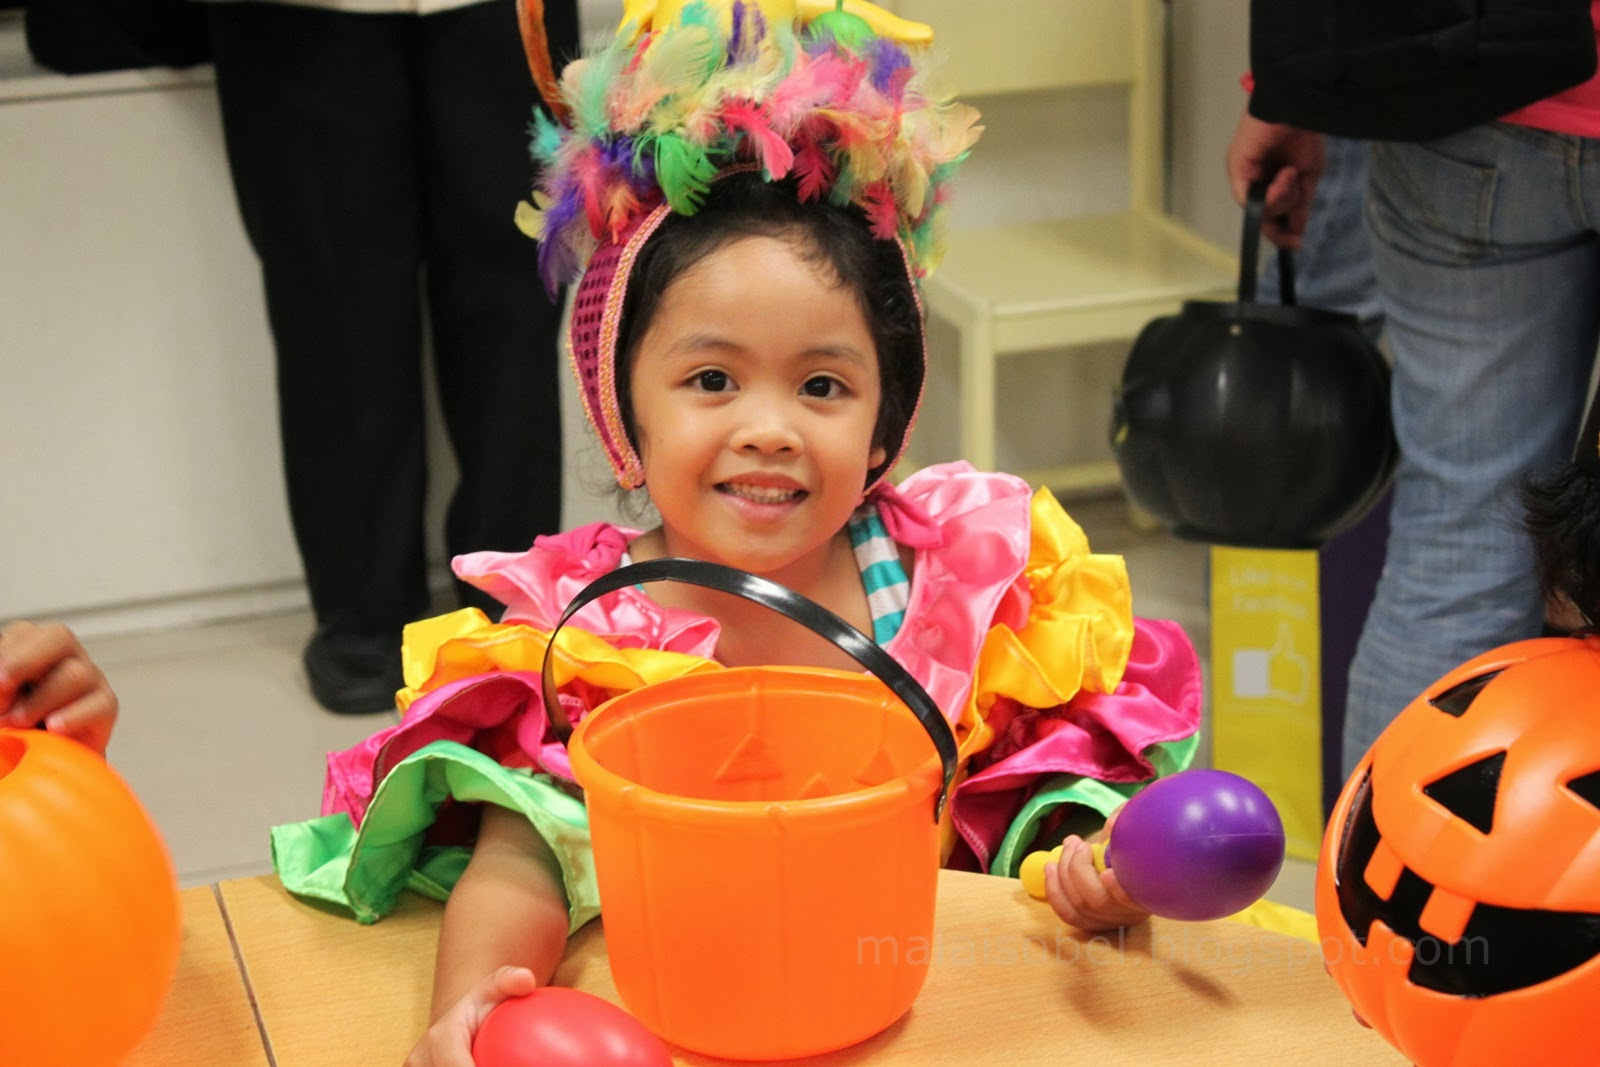 You rocked that Brazilian costume!  sc 1 st  Chronicles of Maia & Chronicles of Maia: United Nations Day - Winning Best Costume